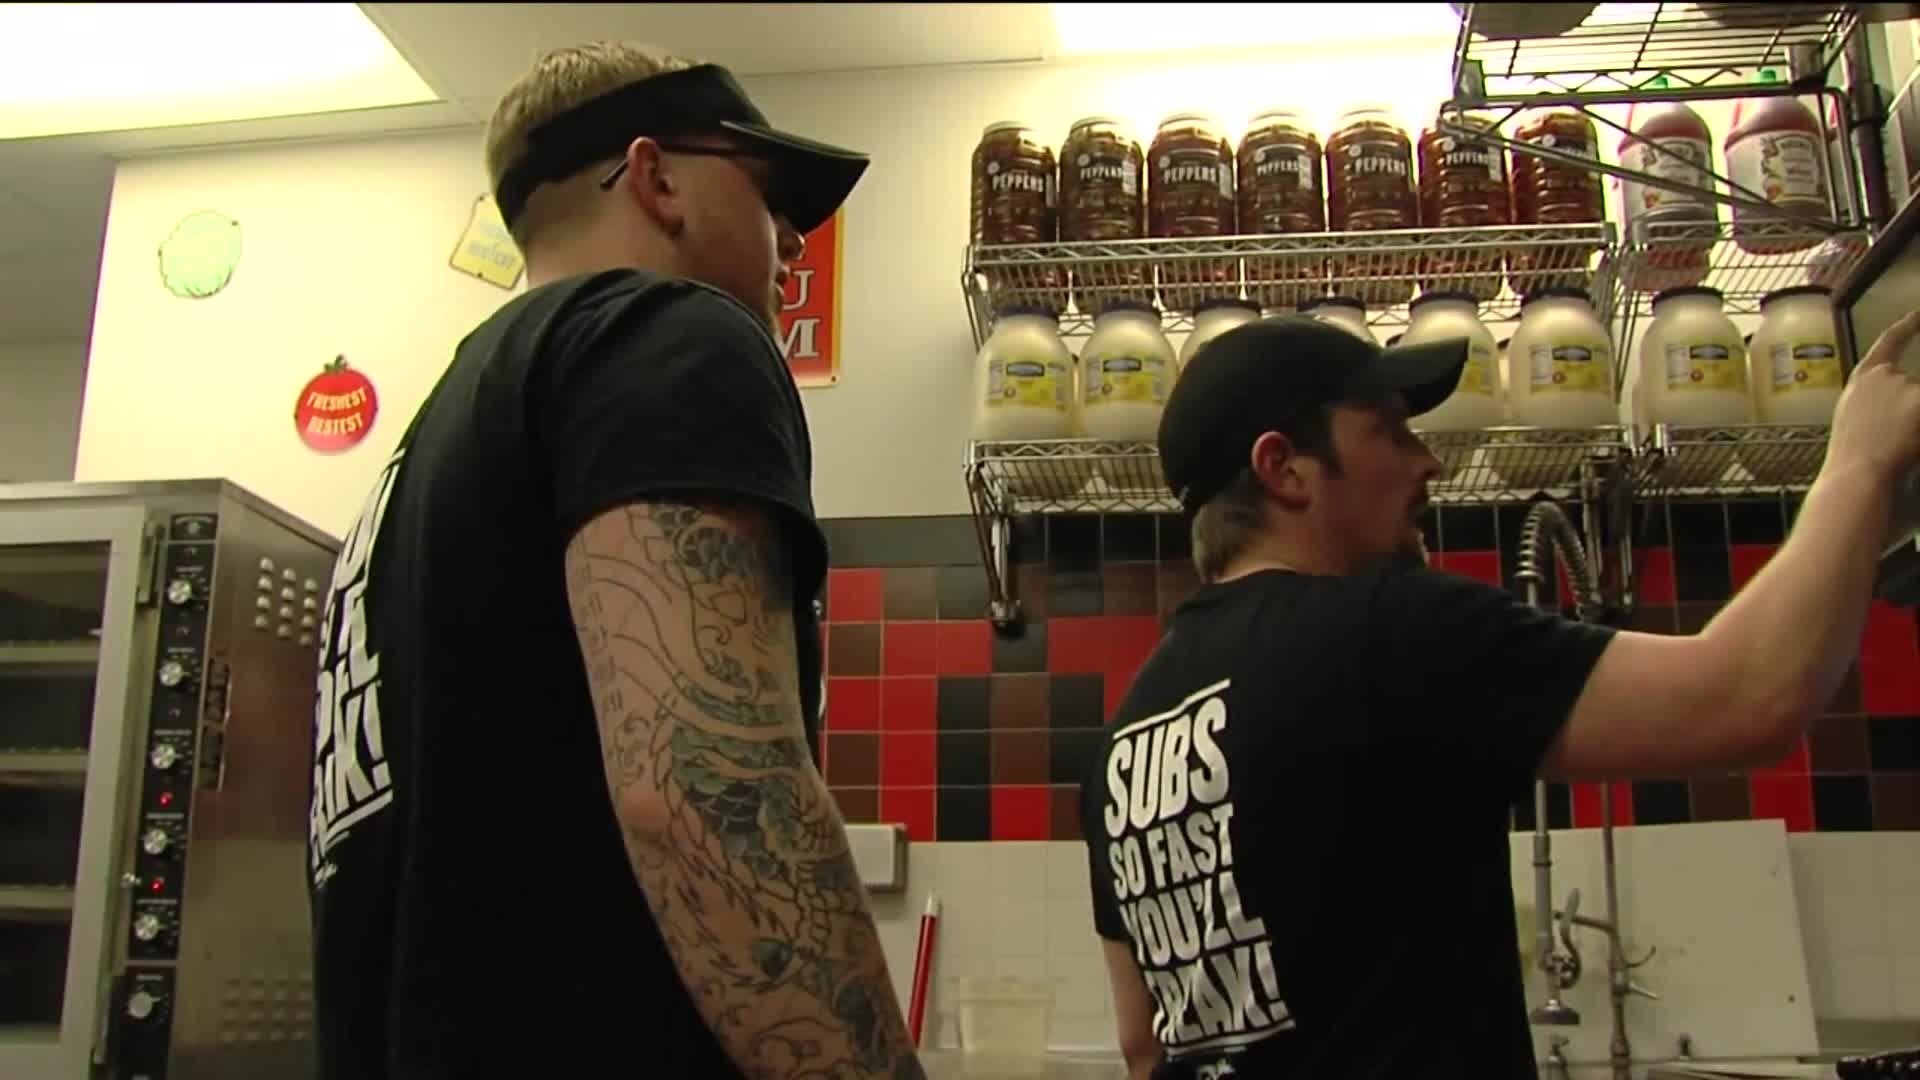 Jimmy John's Employees Turn The Tables On Would-Be Robber